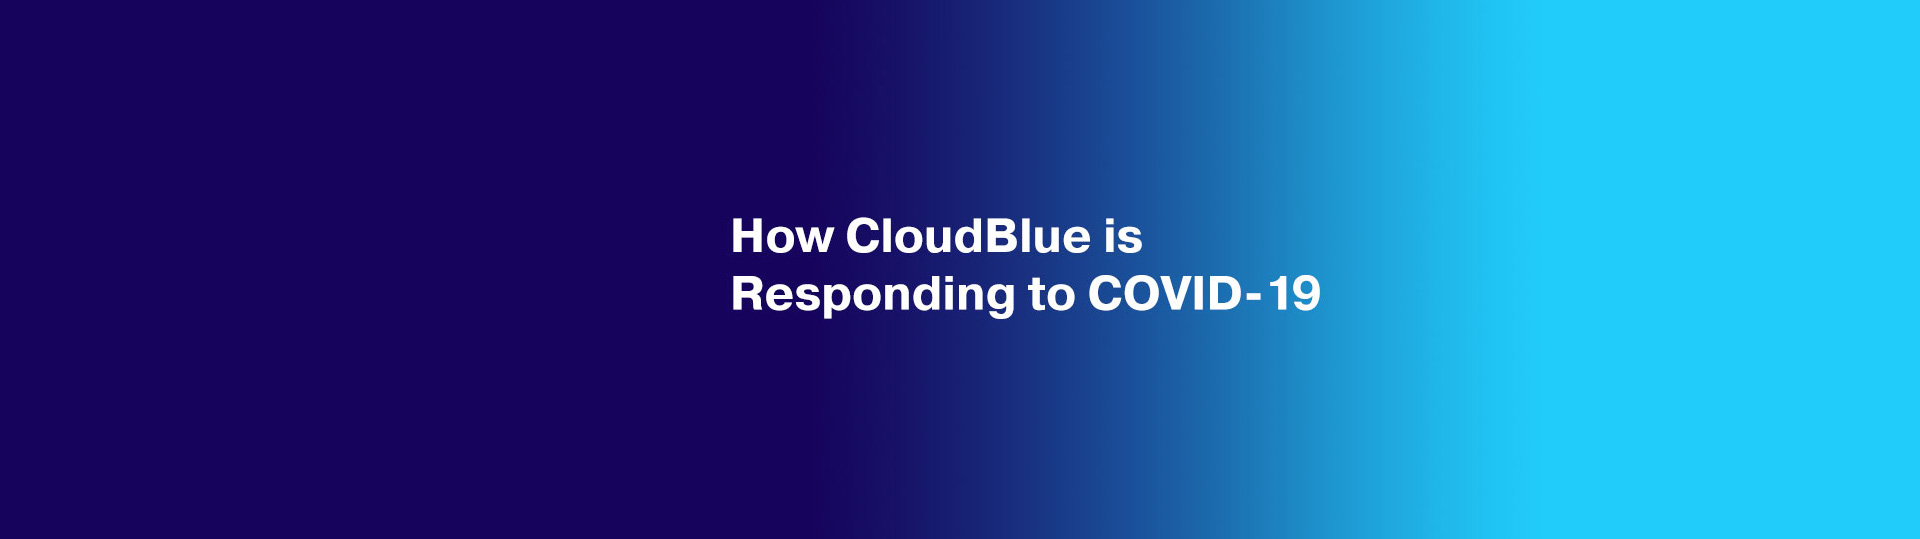 How CloudBlue is responding to COVID-19